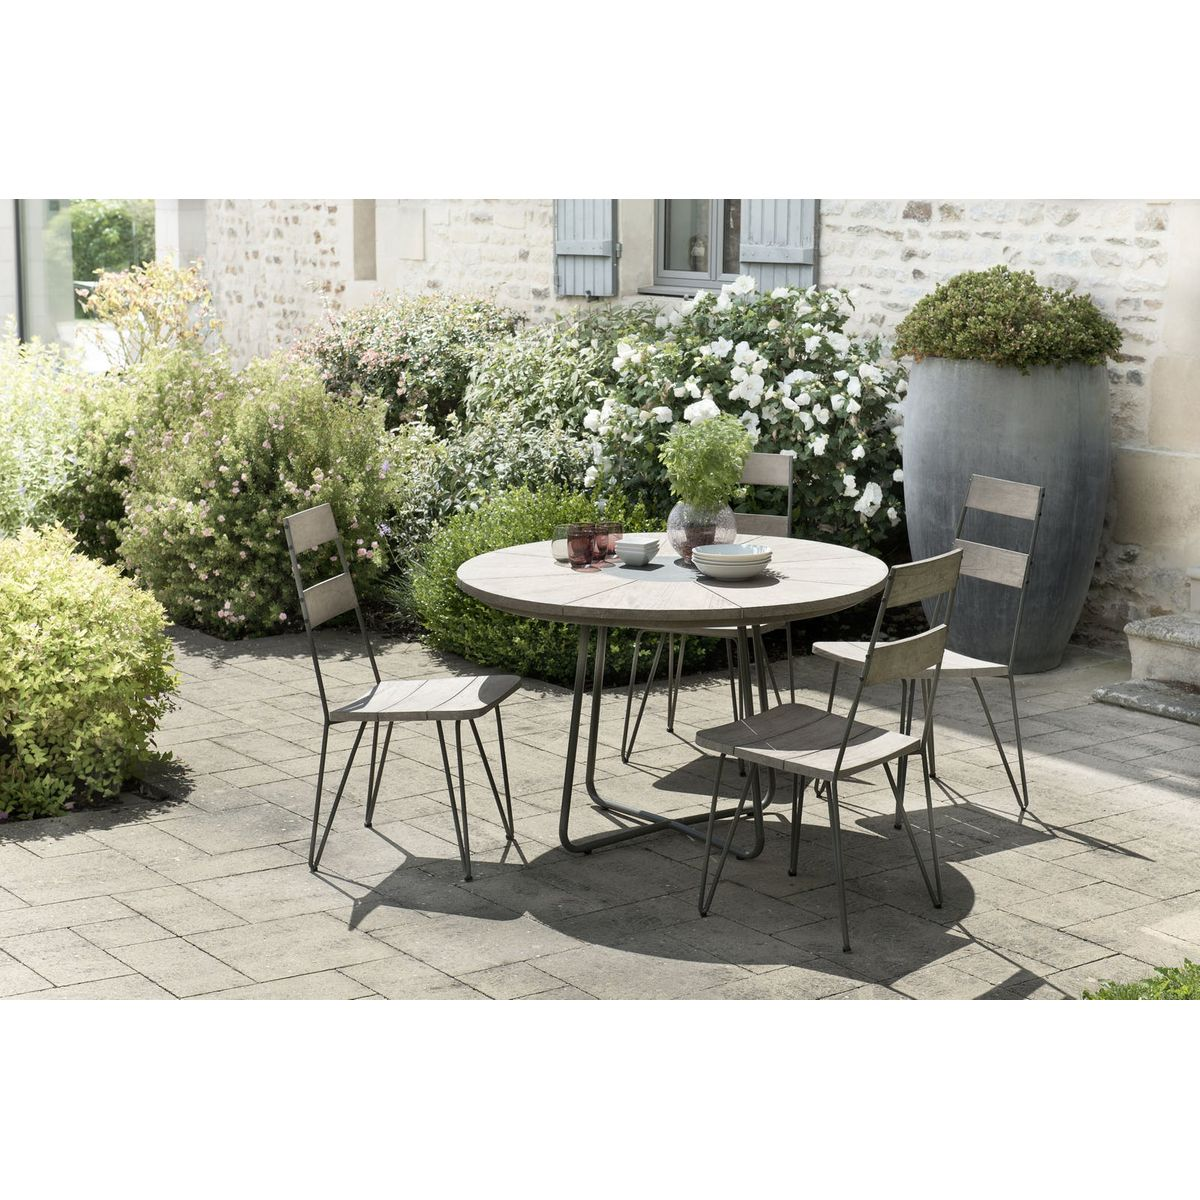 Salon de Jardin Teck Table D120 + 4 chaises DETROIT ref. 30020826 in ...